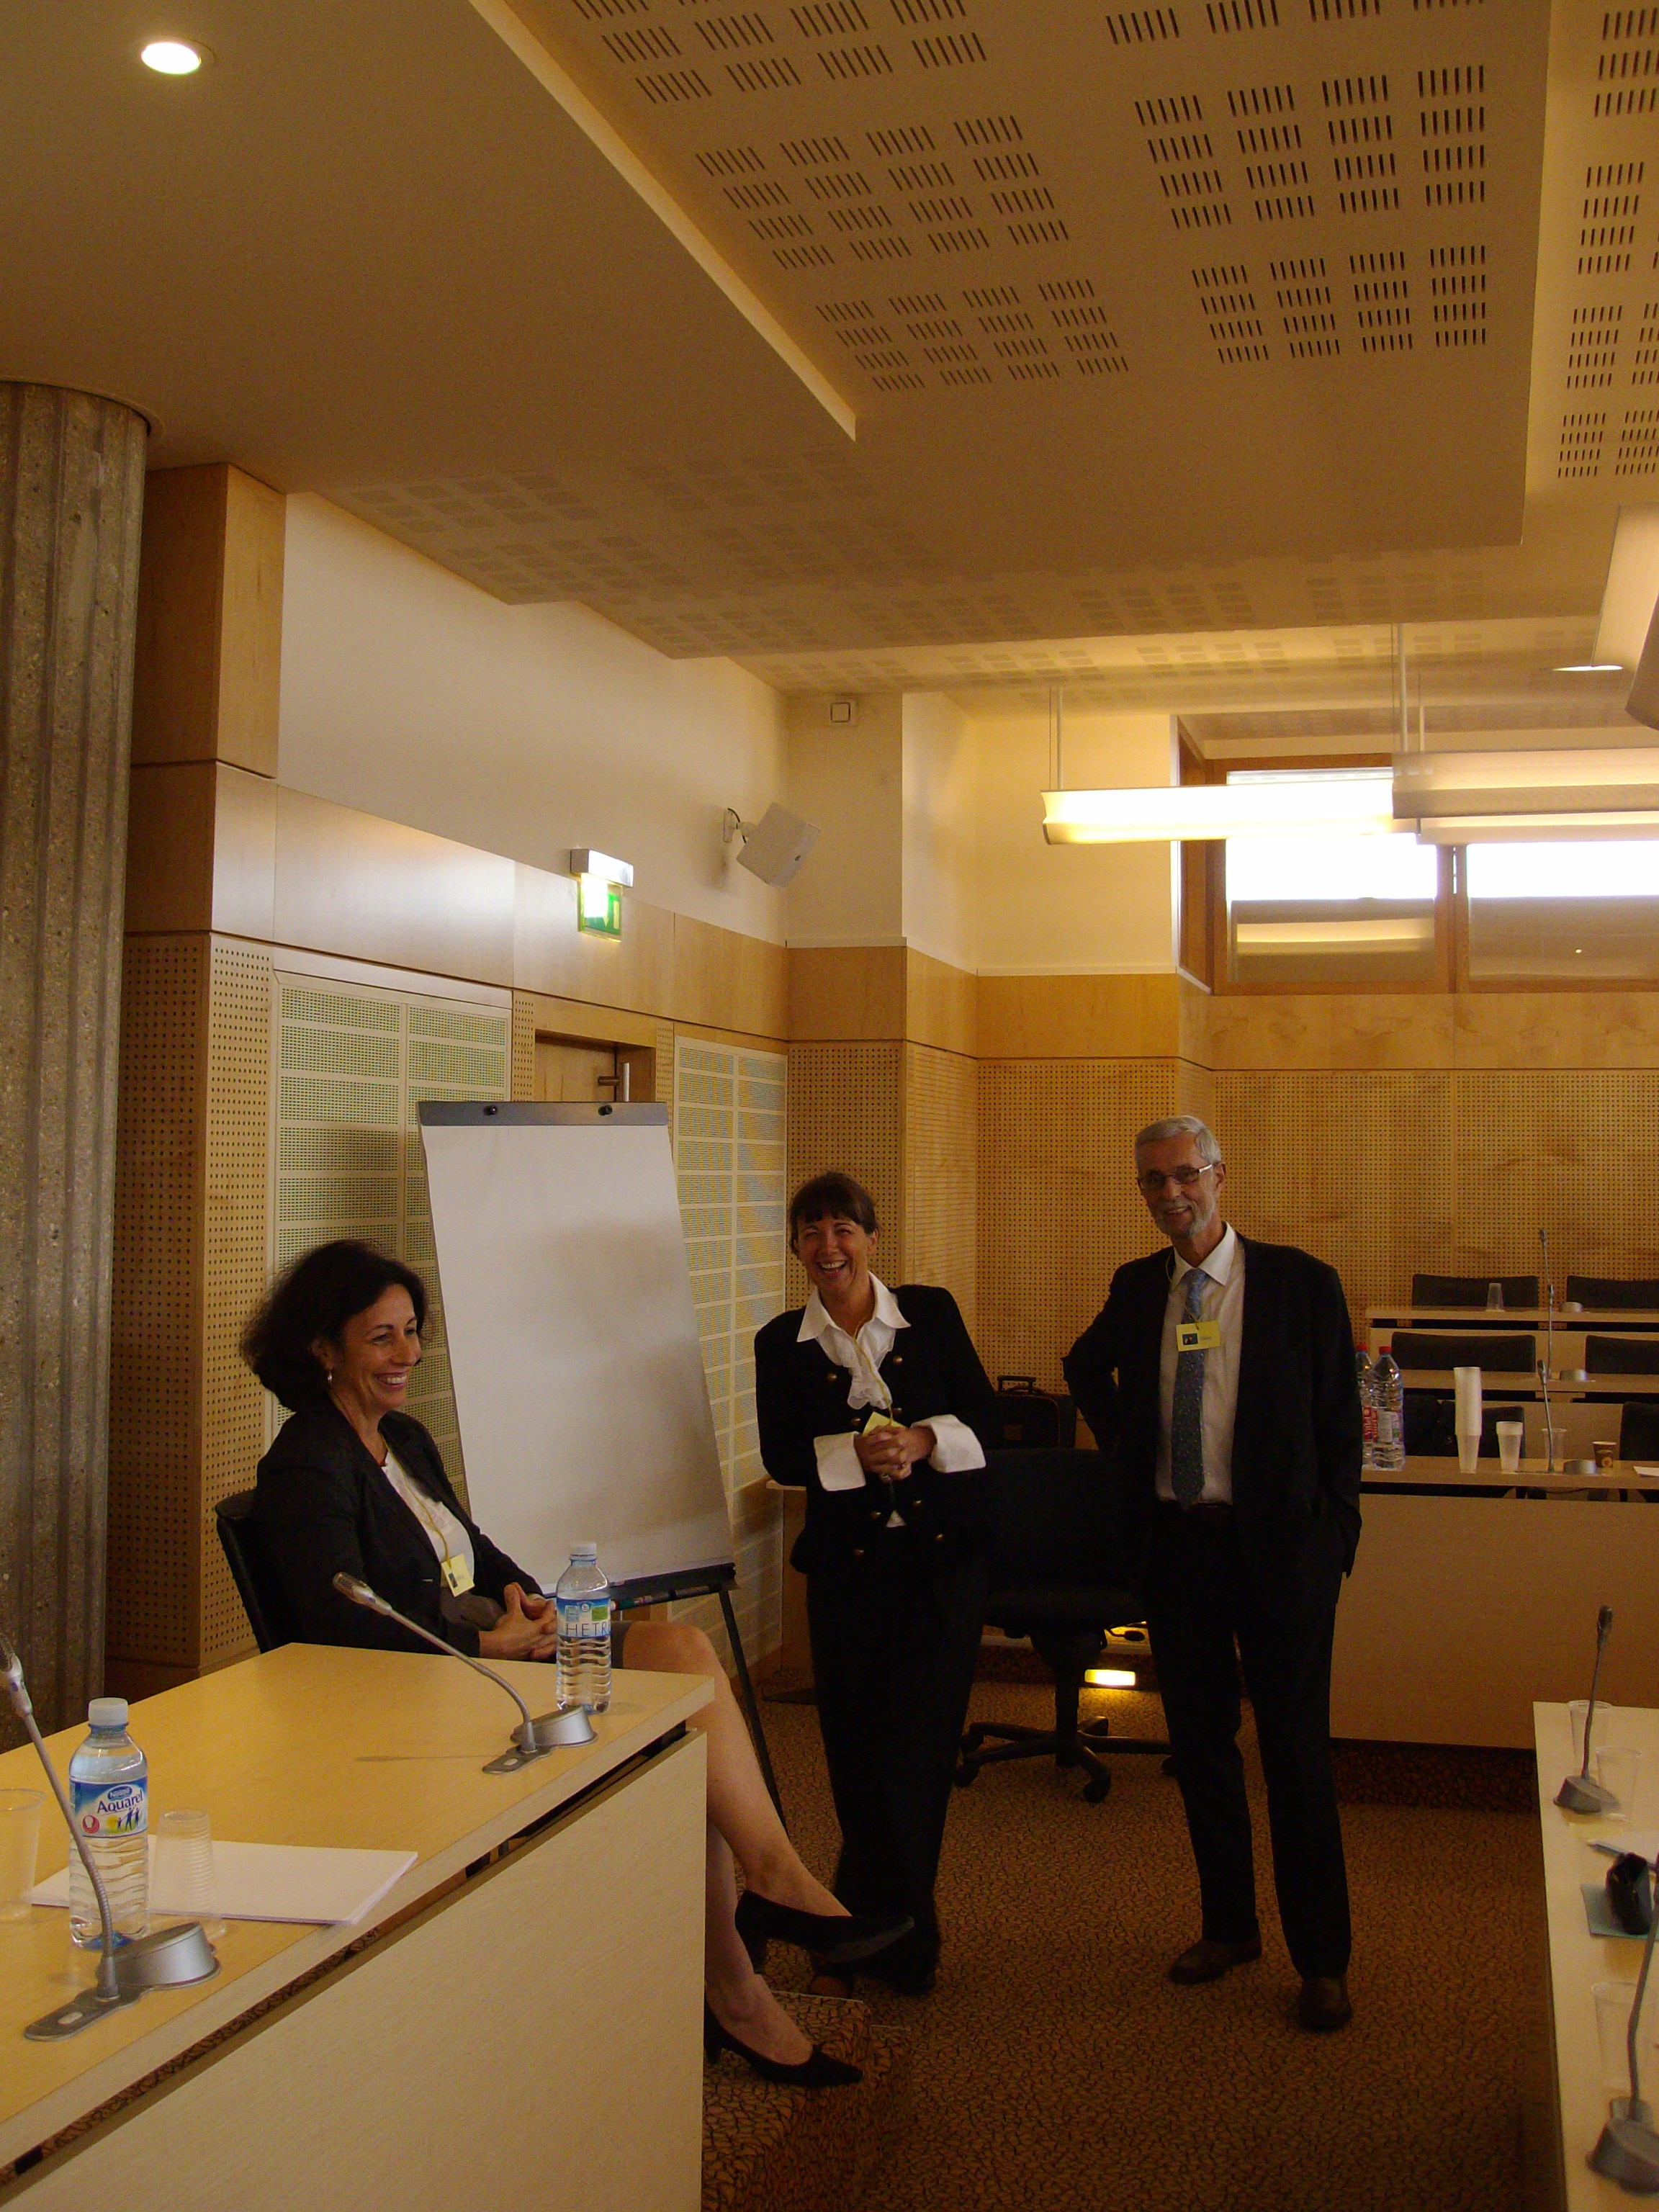 Atelier Coaching: - Isabelle VITTE-BLANCHARD (assise) - Corine NASSOY - Jean-Frédérick LEPERS